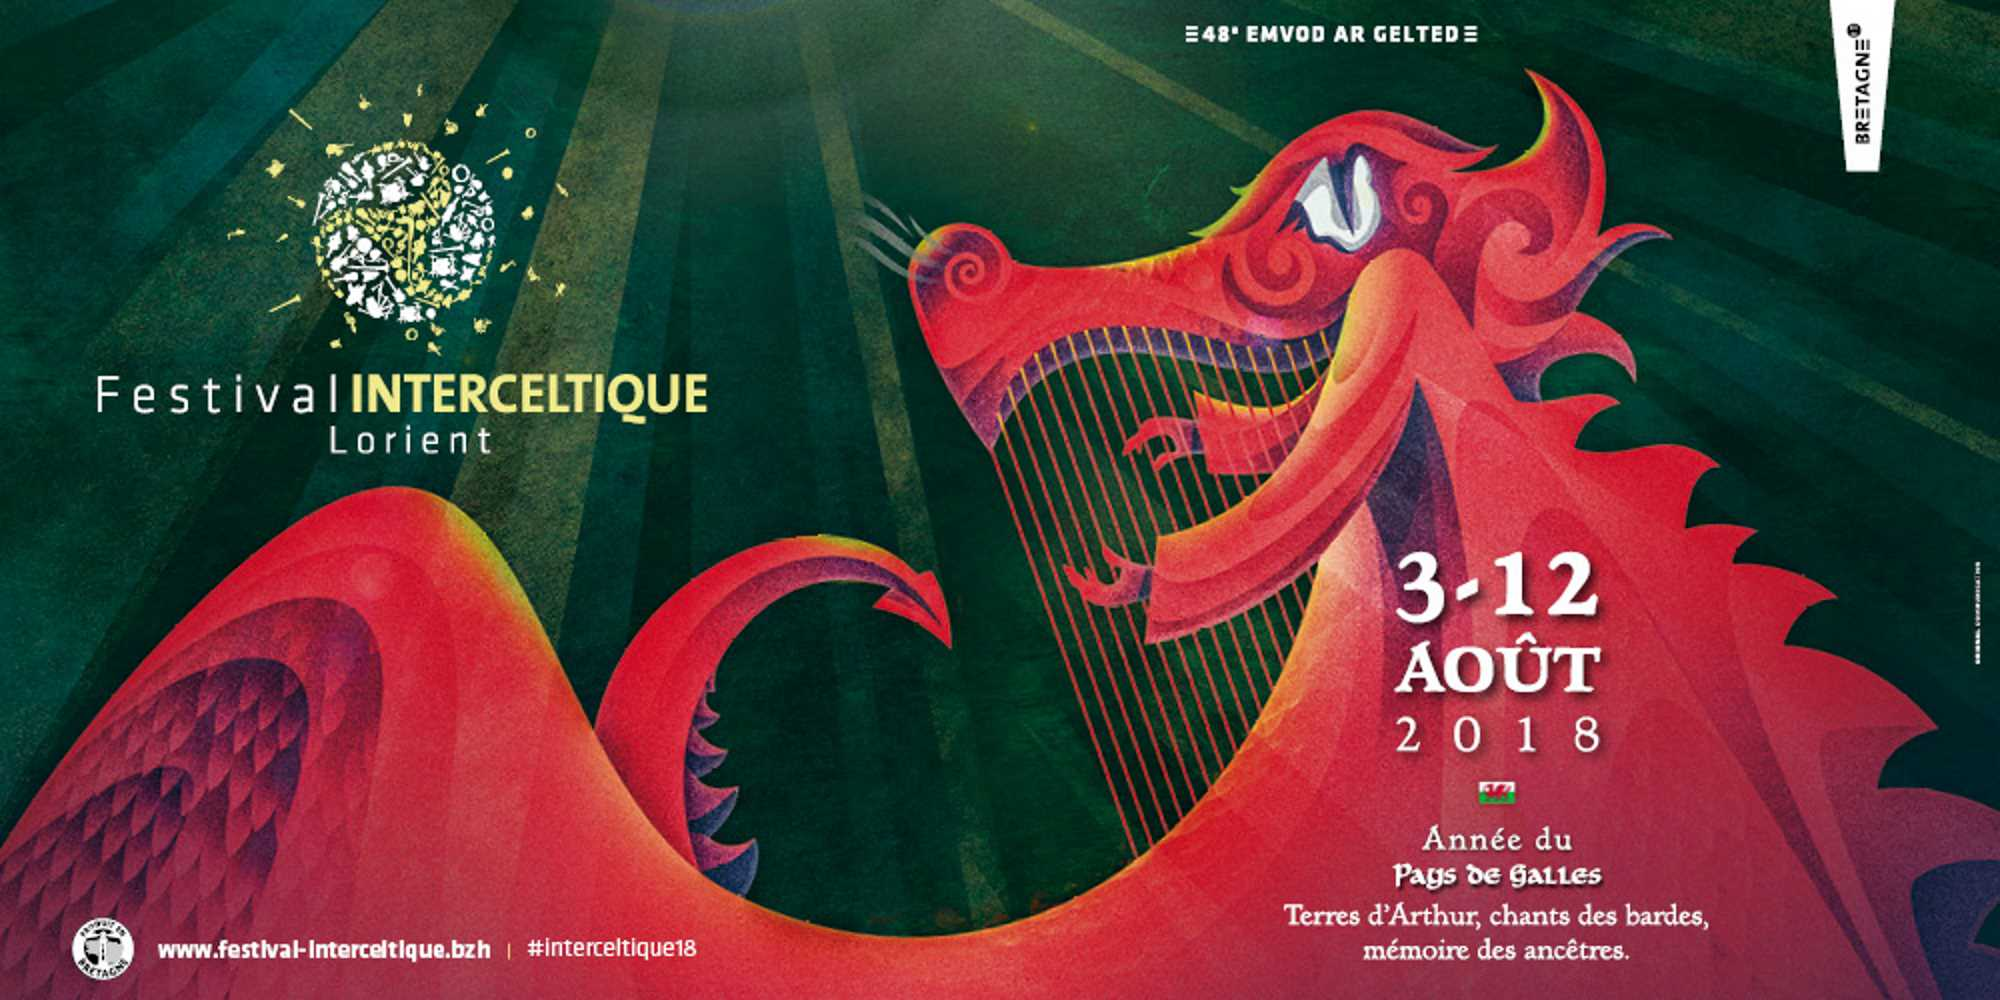 Visuel Festival Interceltique Lorient 2018